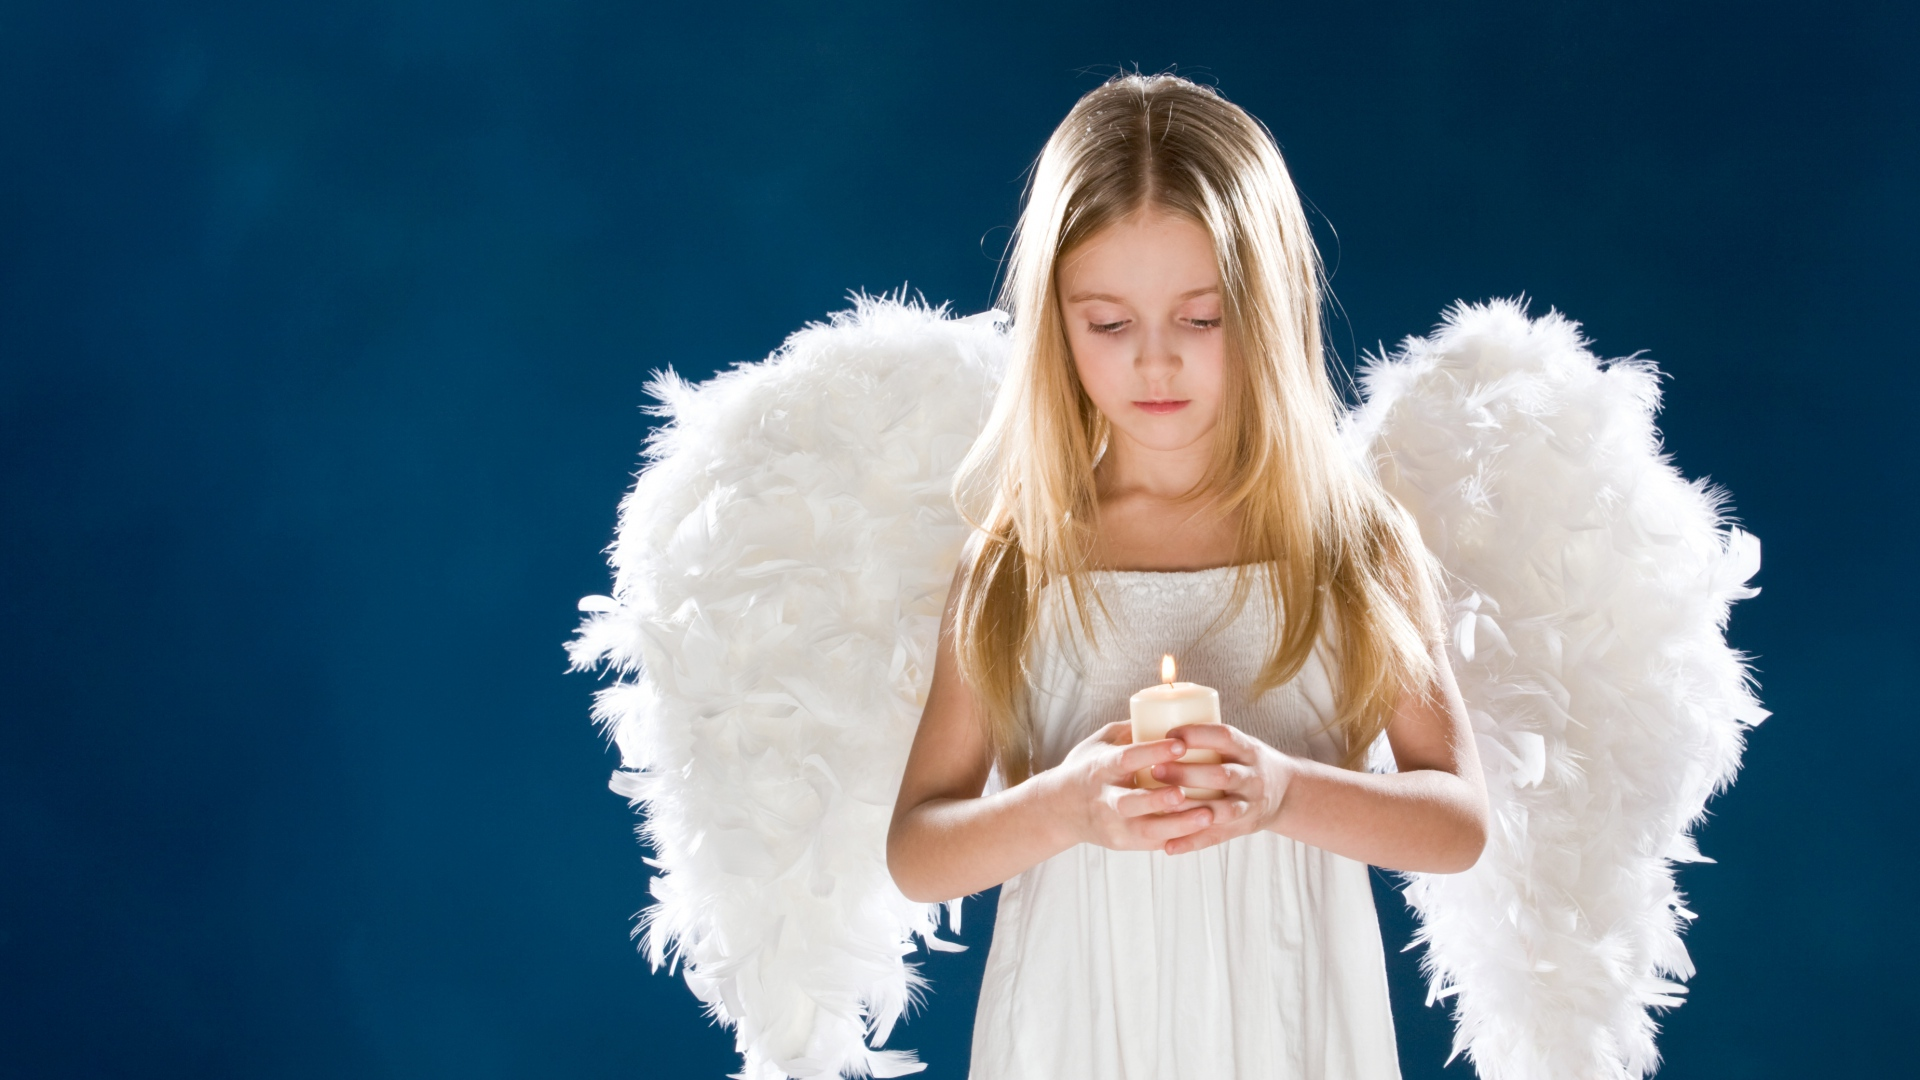 Hd Baby Girl Wallpapers 1080p Download Wallpaper 1920x1080 Child Girl Angel Wings